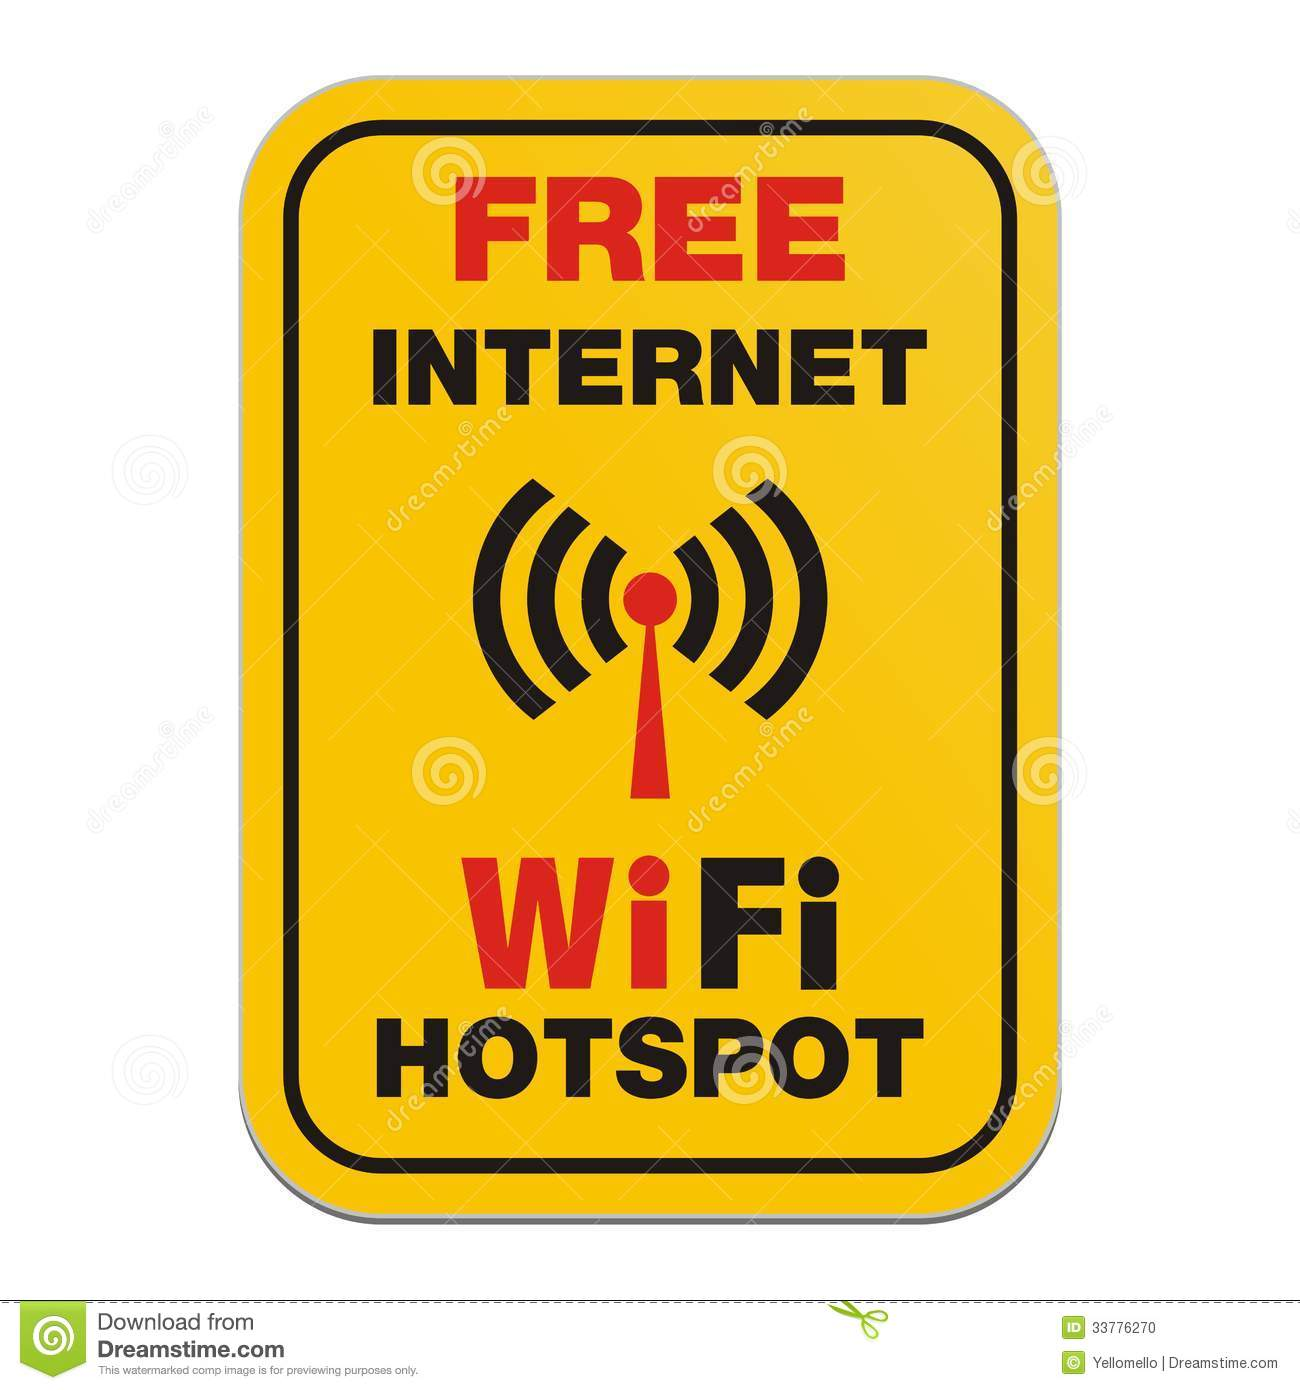 Free Internet Wifi Hotspot Sign Stock Photo  Image 33776270. What Is Telematics System Web Deployment Tool. Hvac System Cost Residential. American River College Financial Aid. Required Classes For College. Recovery Resources Florida Black Box Tijuana. Sample Contractor Proposal Open Event Viewer. Best Virtual Phone System Eig Hosting Support. Converting An Ira To A Roth Ira